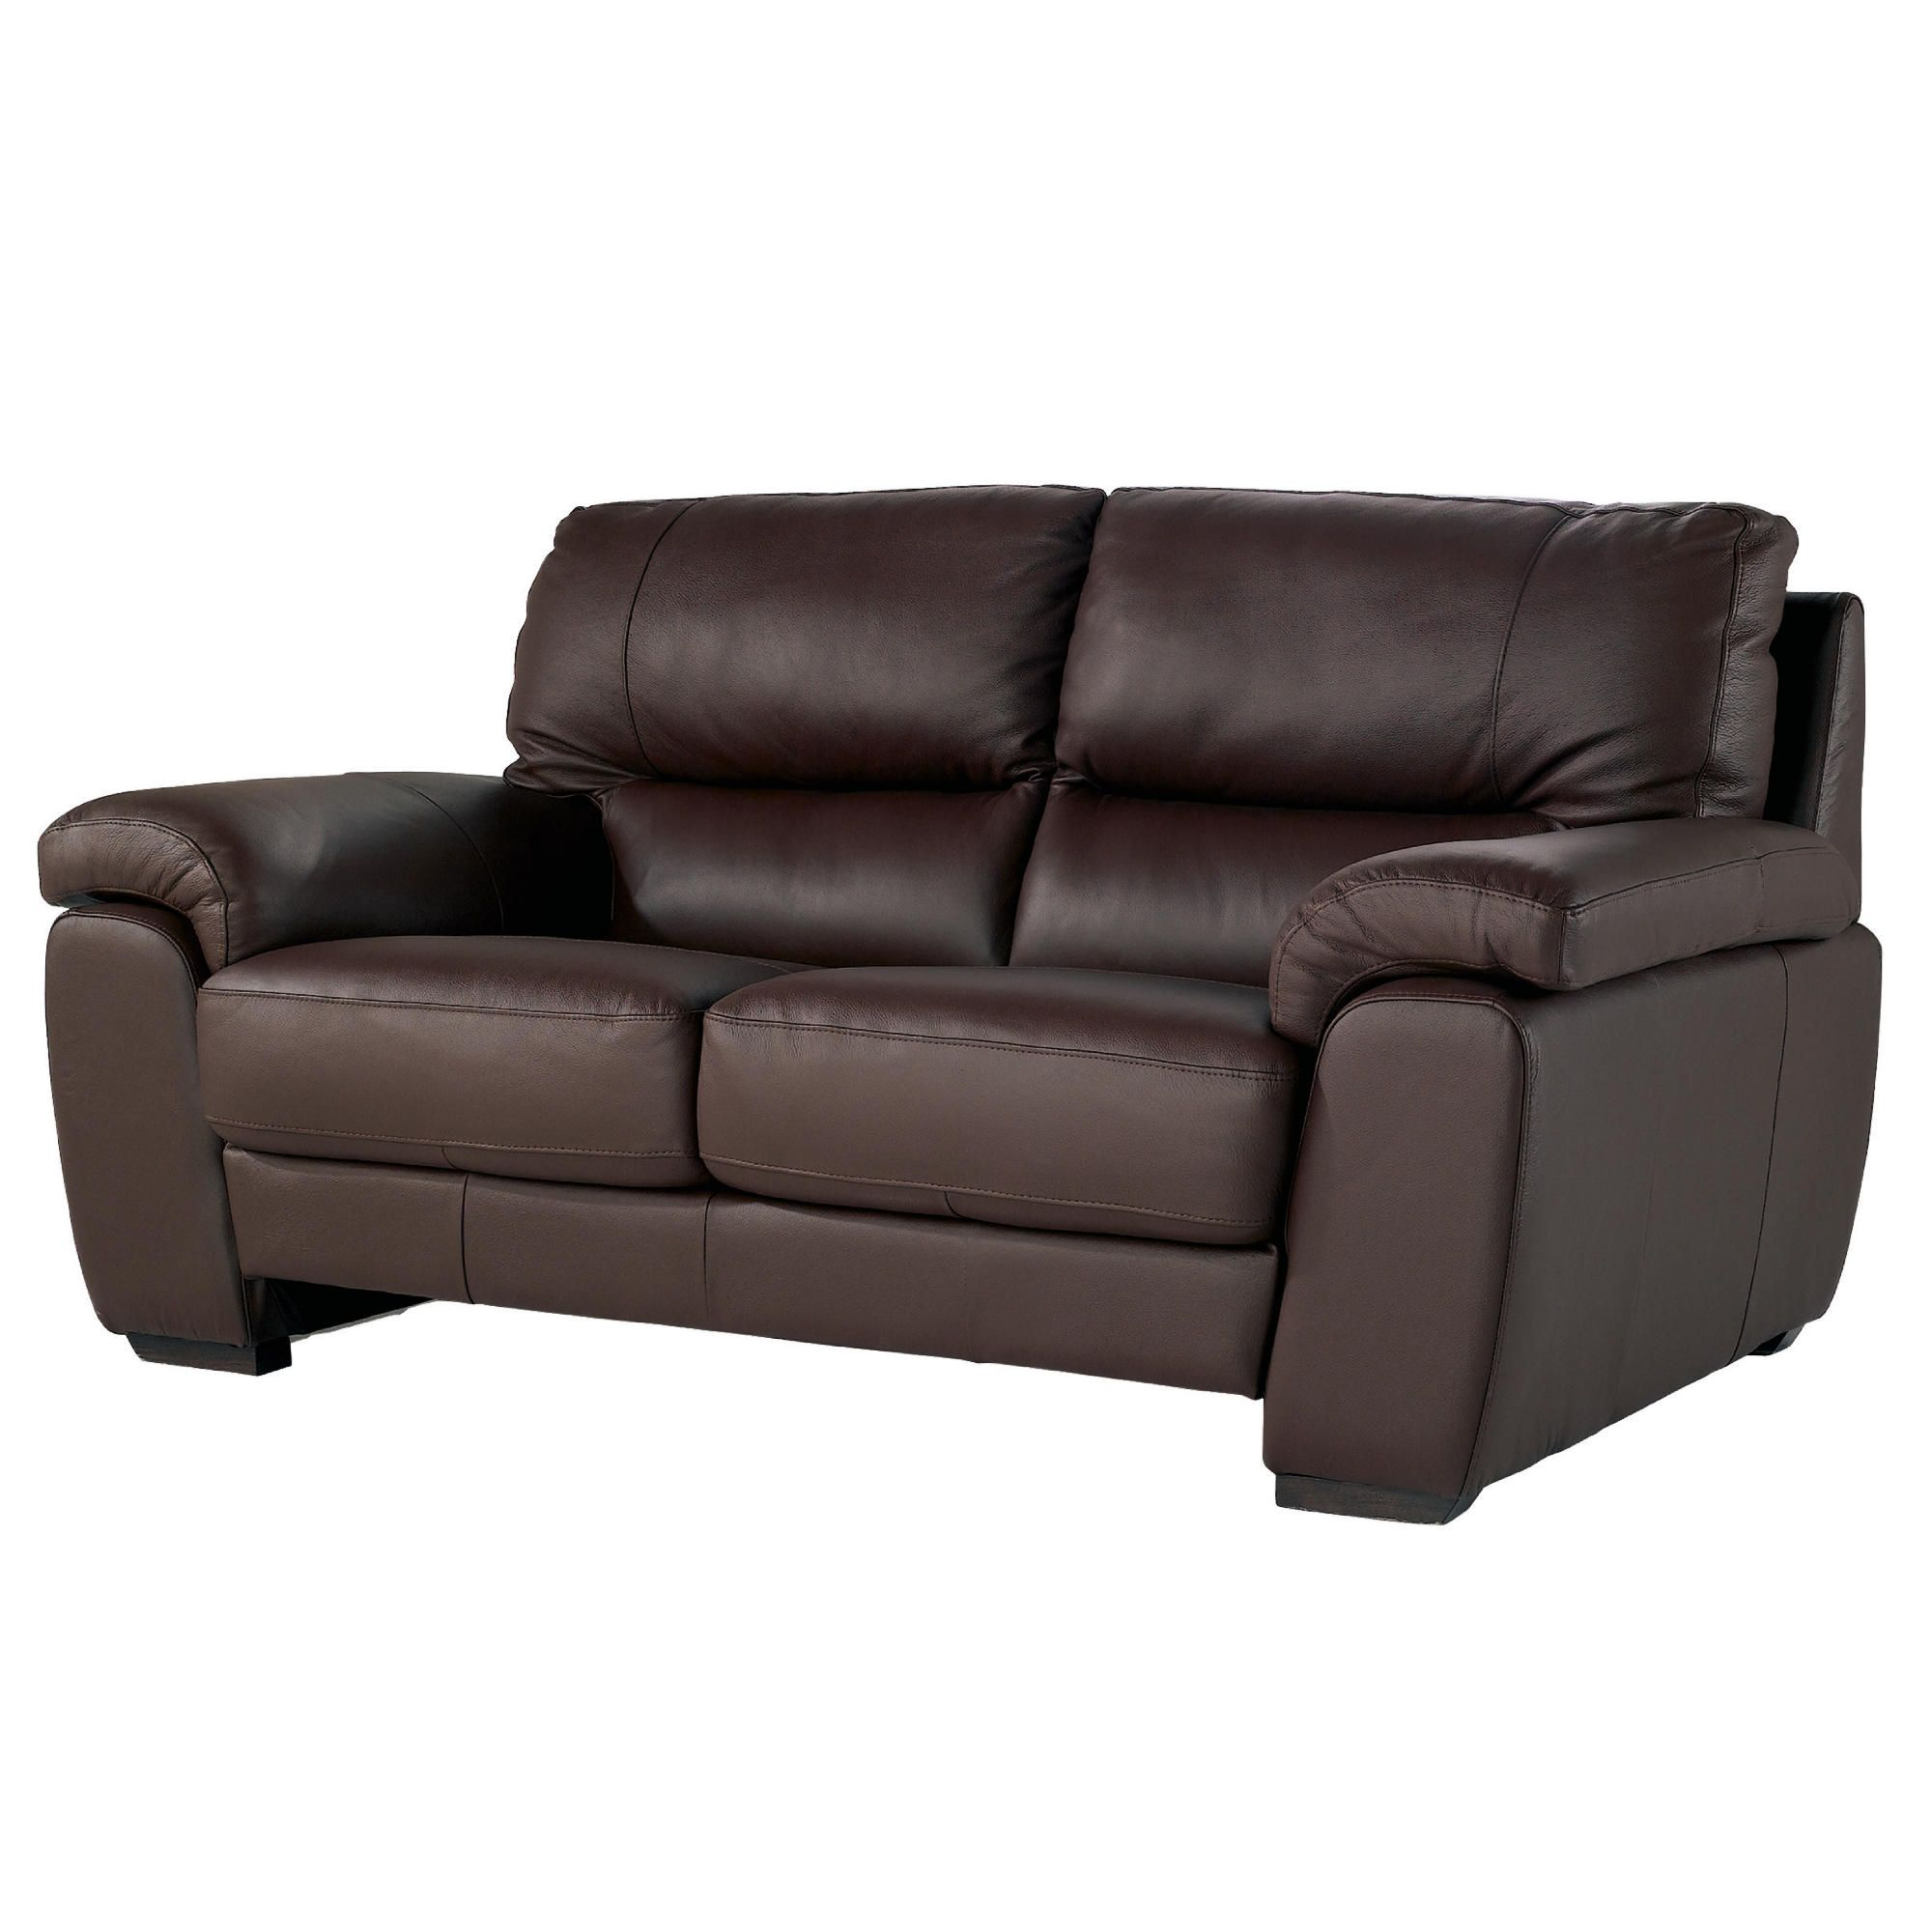 Alfredo Small Leather Sofa Cognac at Tesco Direct